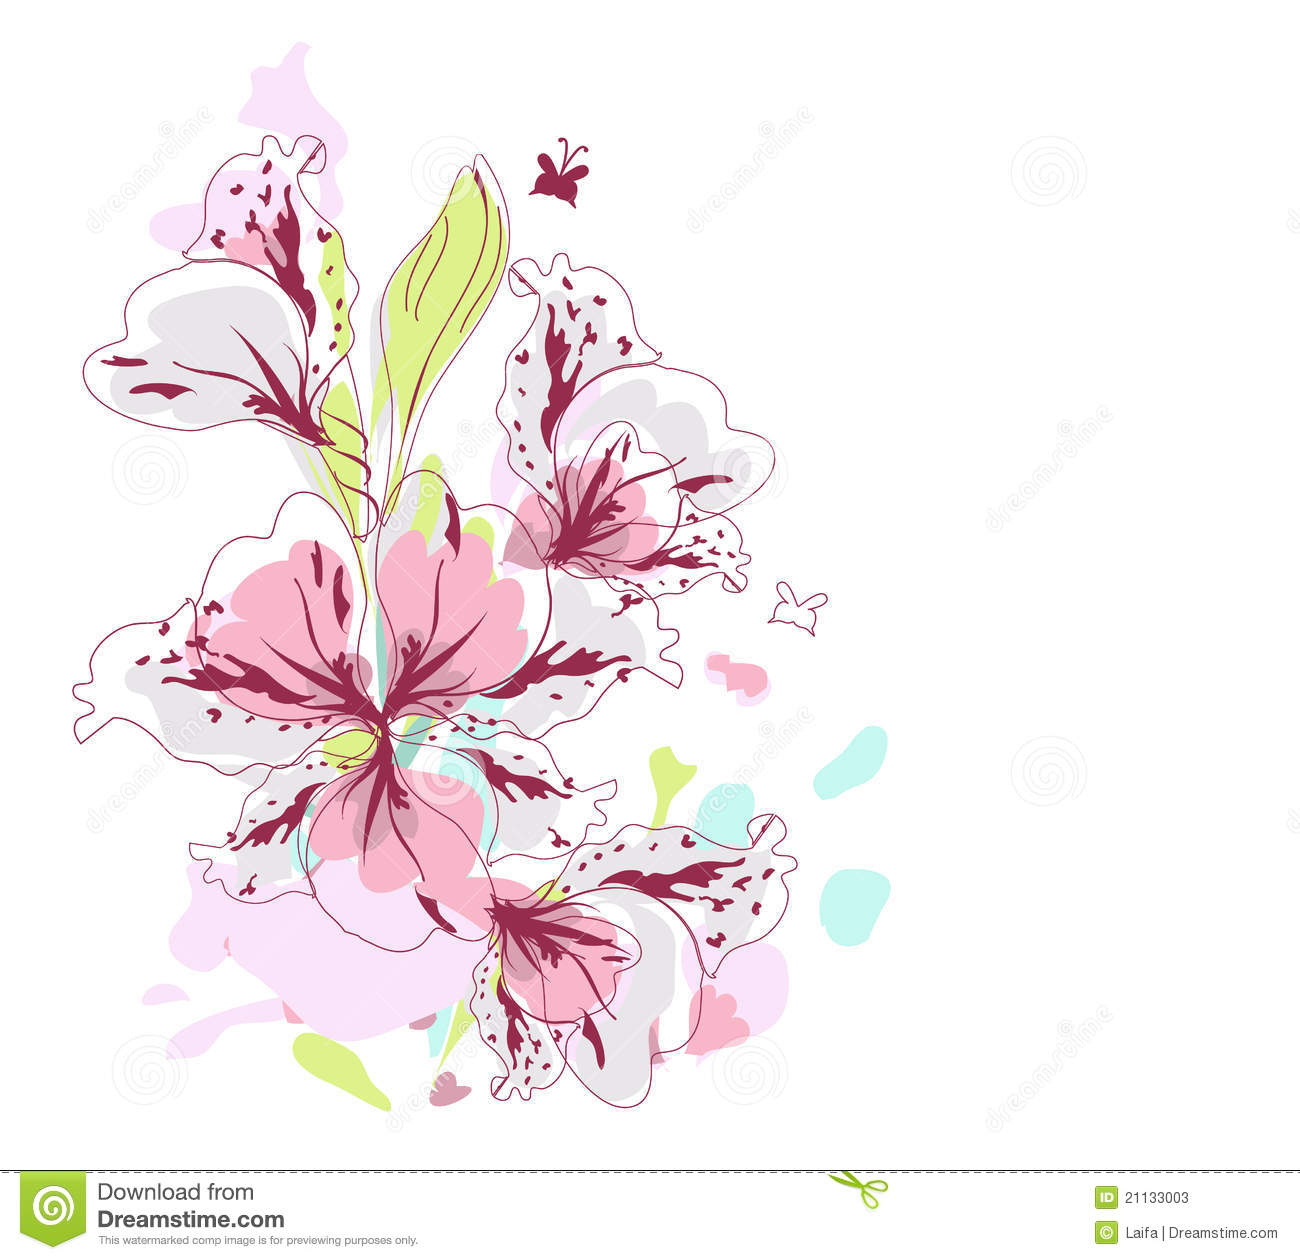 Pink Flowers In Watercolor Stock Photos - Image: 21133003